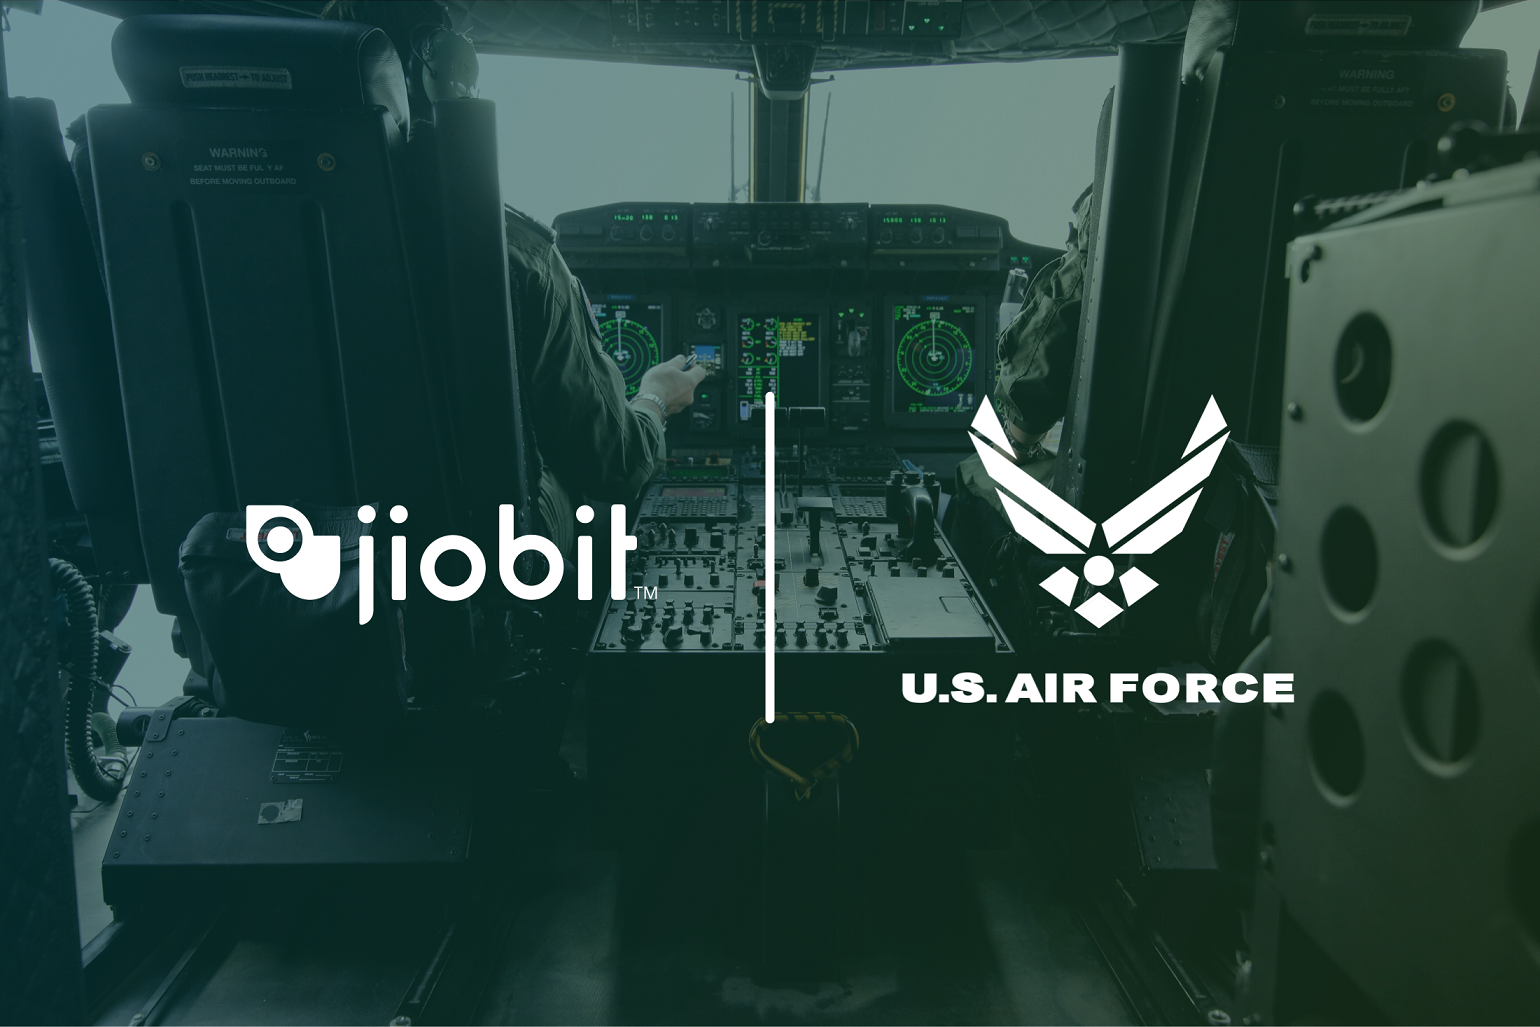 Jiobit+ U.S. Air Force